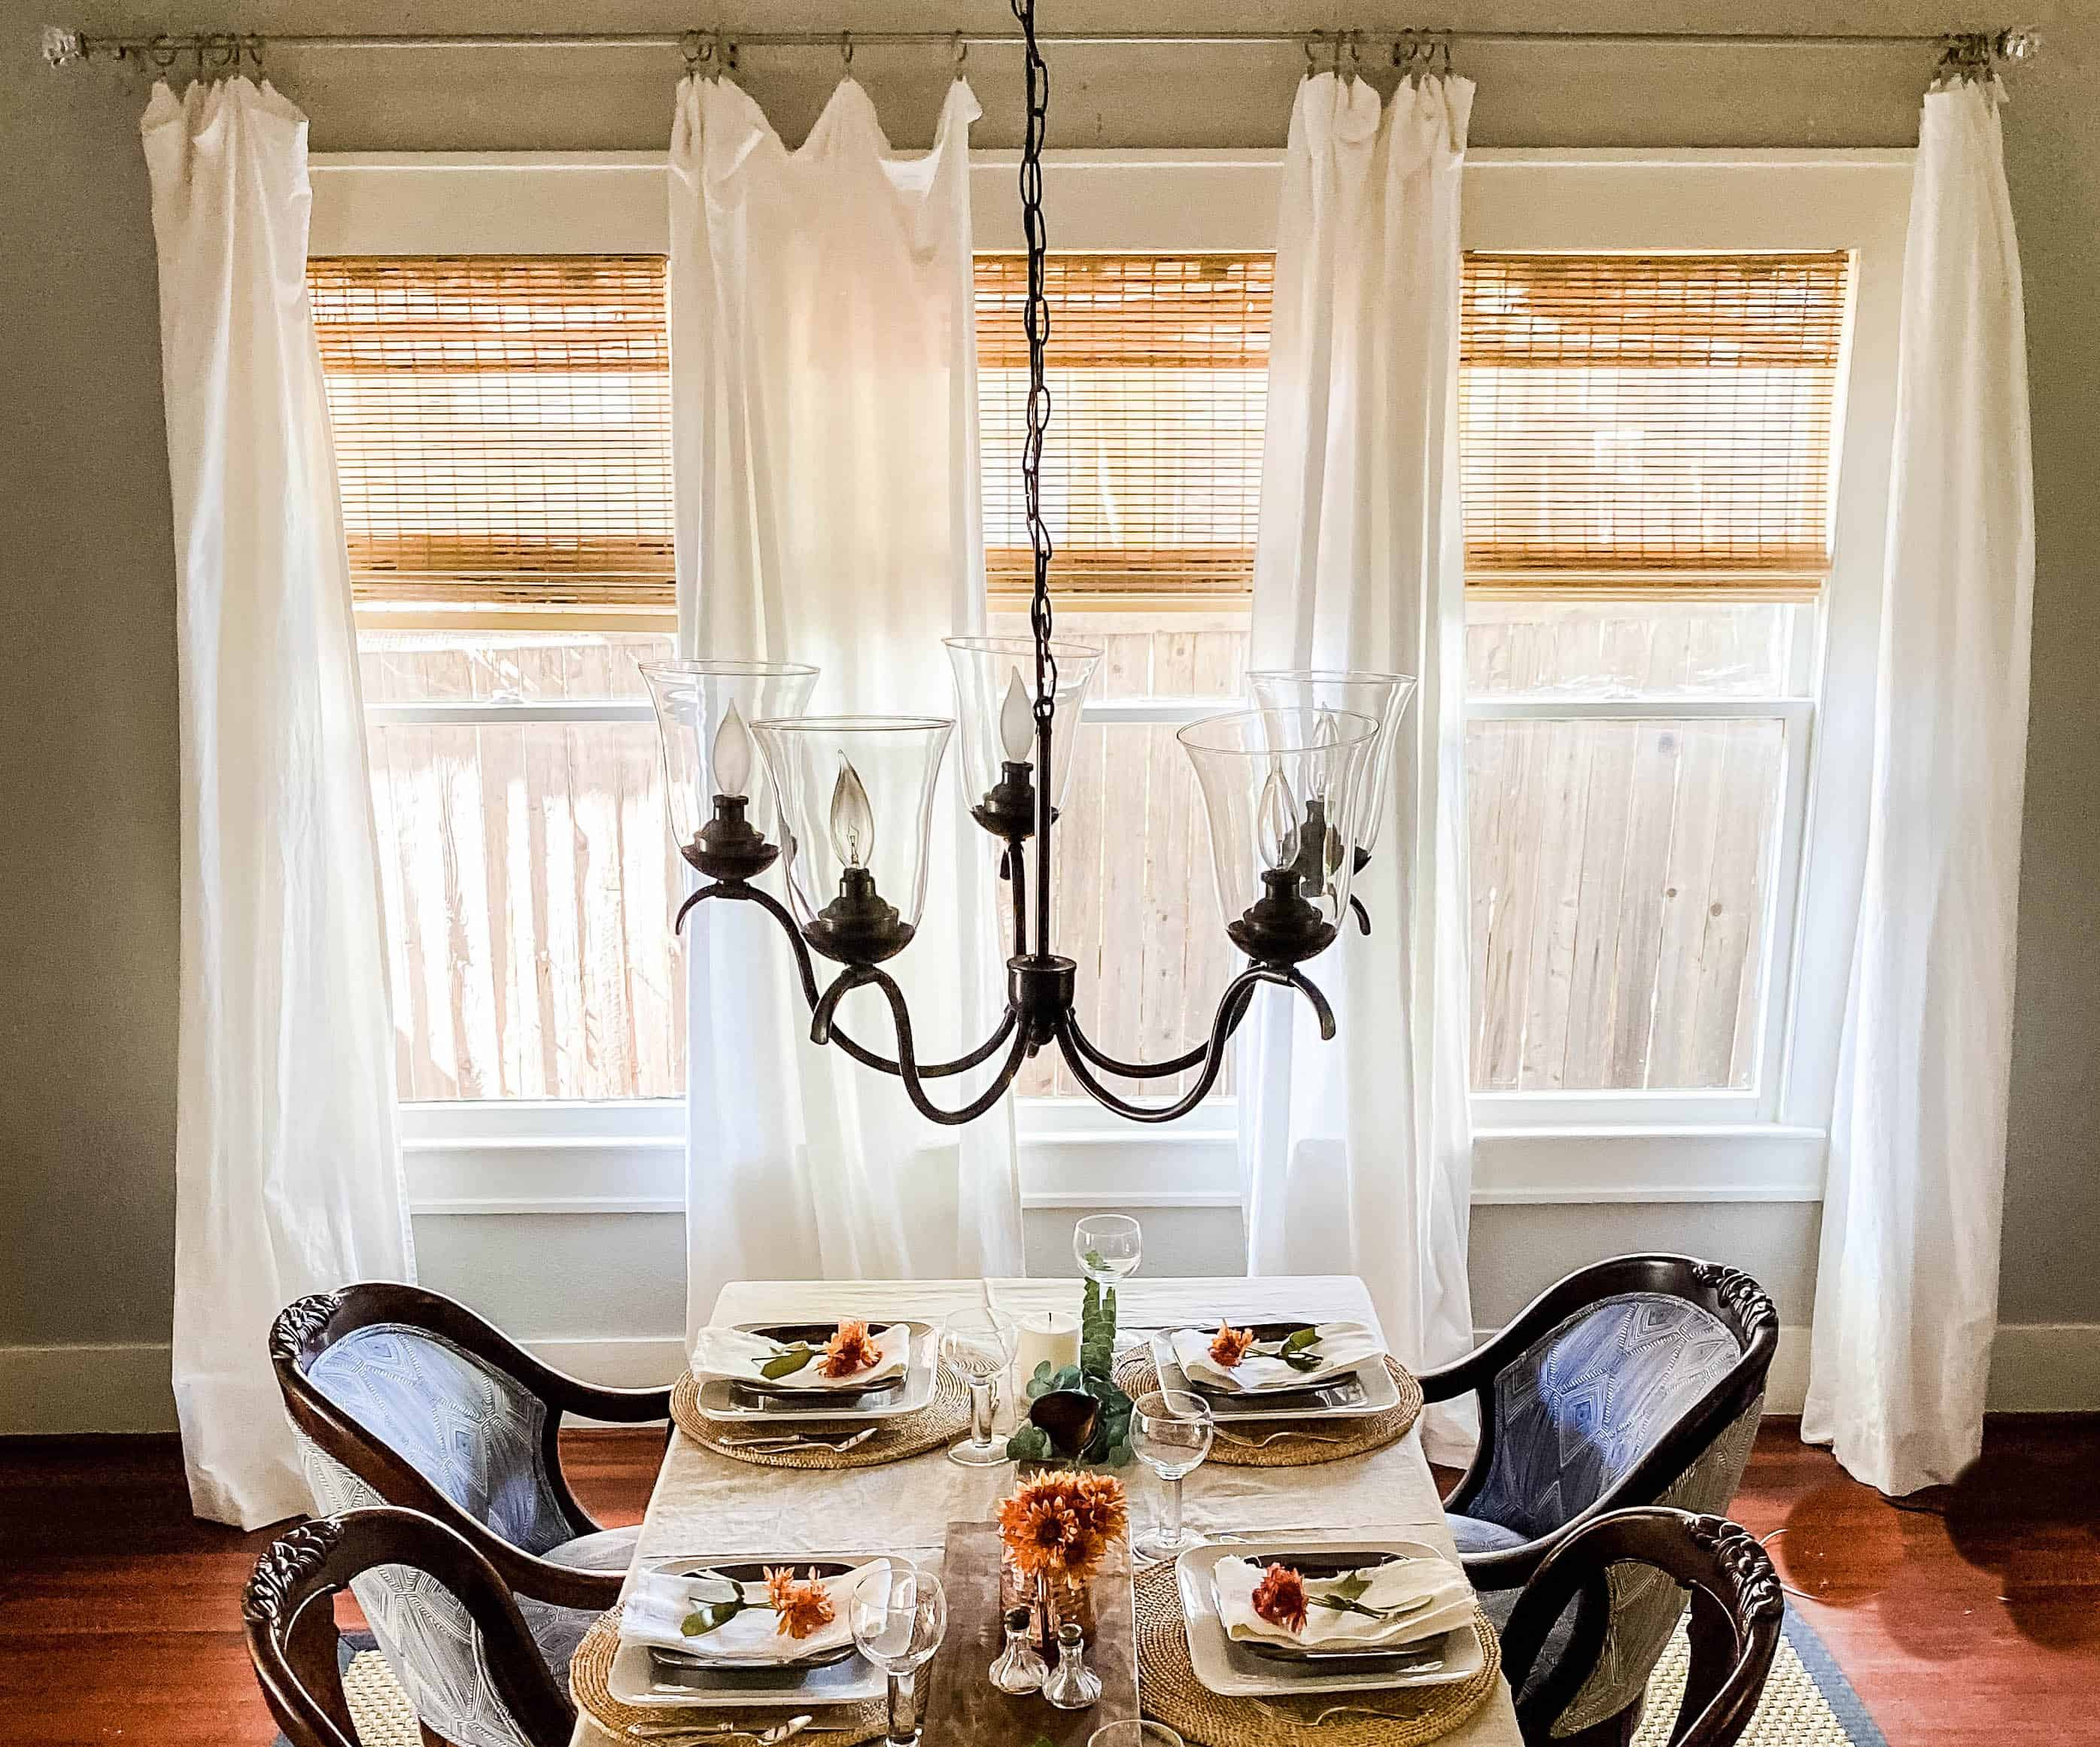 Farmhouse Dining Decor Design Morsels